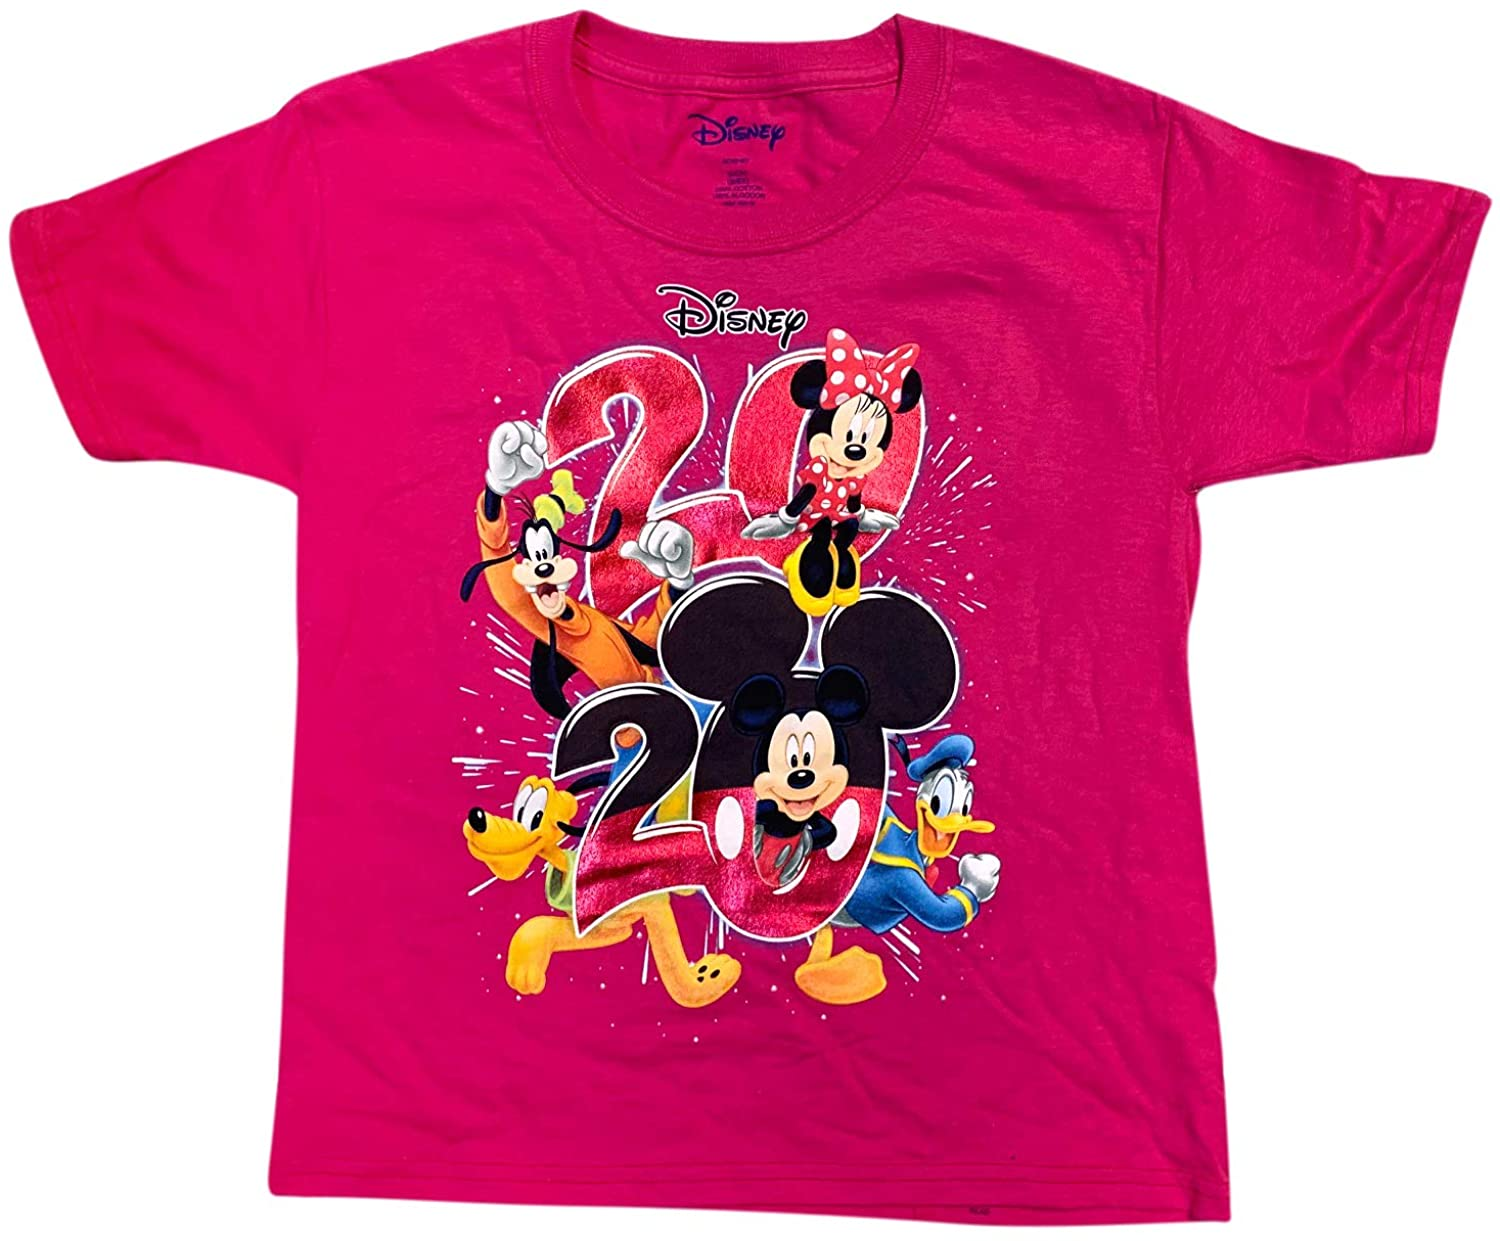 Disney Youth Unisex Pink 2020 Mickey Mouse and Friends Shirt